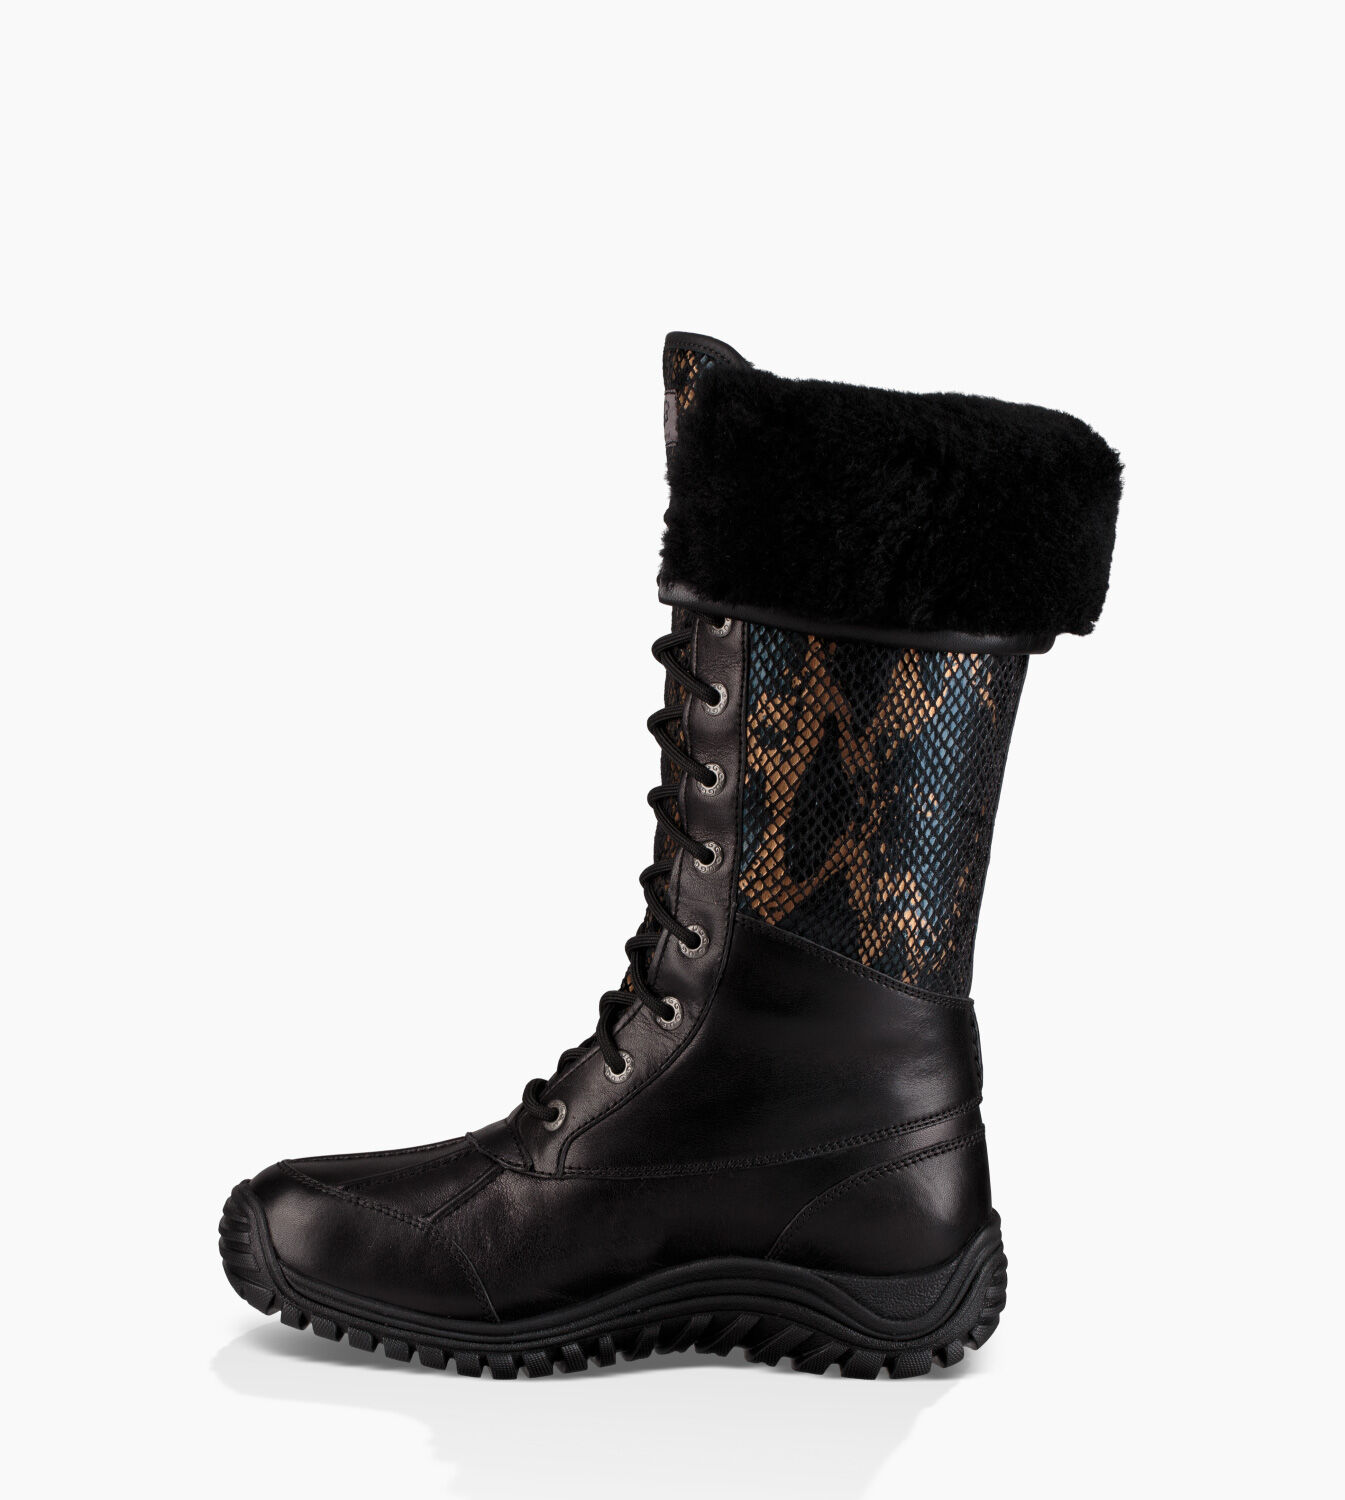 Shop for sexy thigh high boots for Women at cheap prices, buy sexy thigh high boots that lace up from AMIClubwear and get free shipping on orders over $